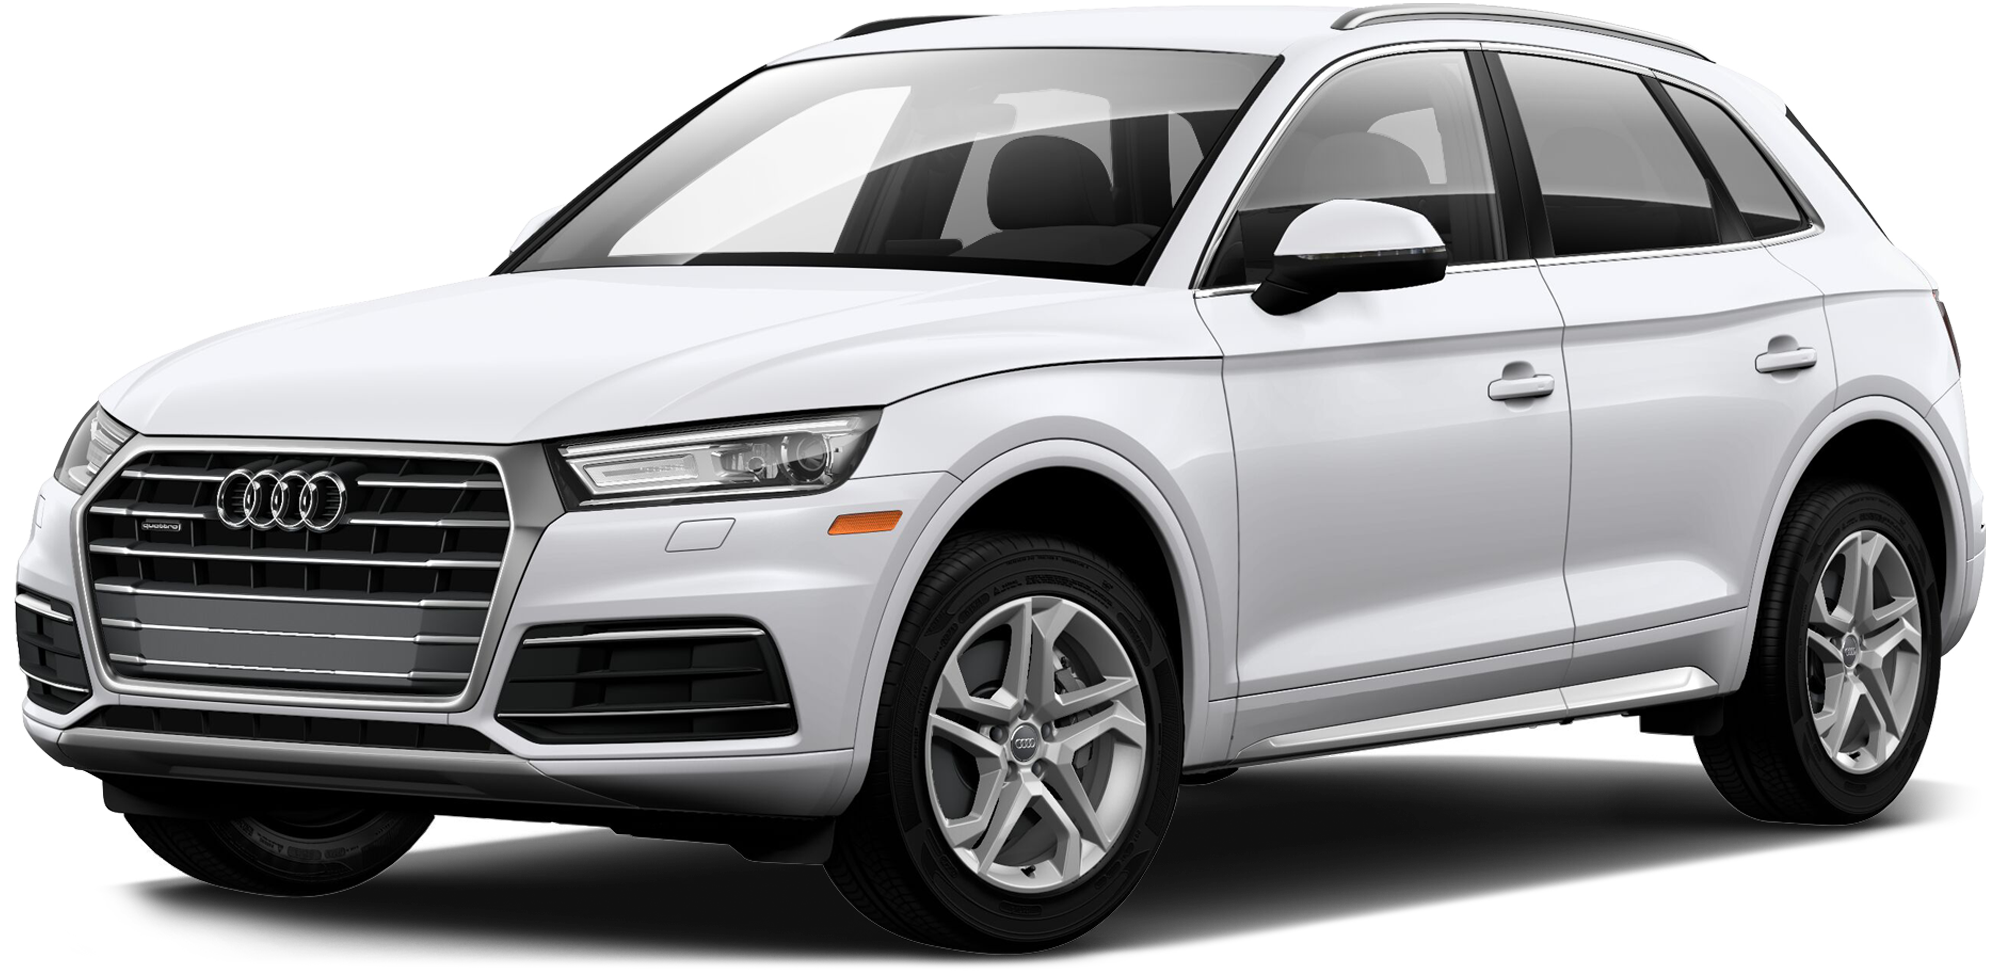 http://images.dealer.com/ddc/vehicles/2019/Audi/Q5/SUV/trim_20T_Premium_30a1df/perspective/front-left/2019_24.png